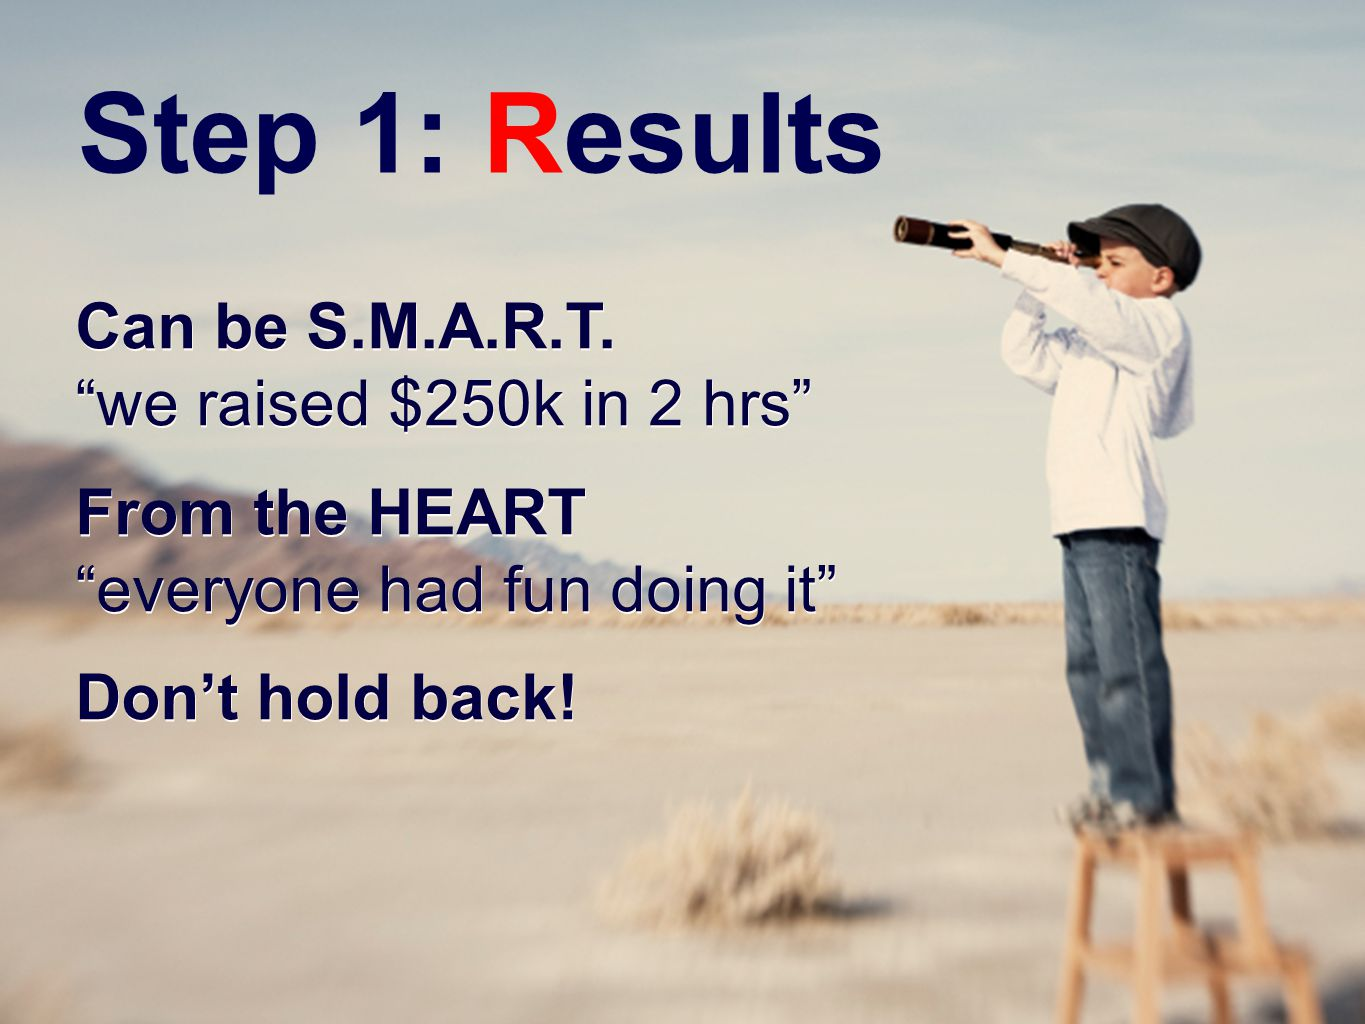 Step 1: Results Can be S.M.A.R.T.